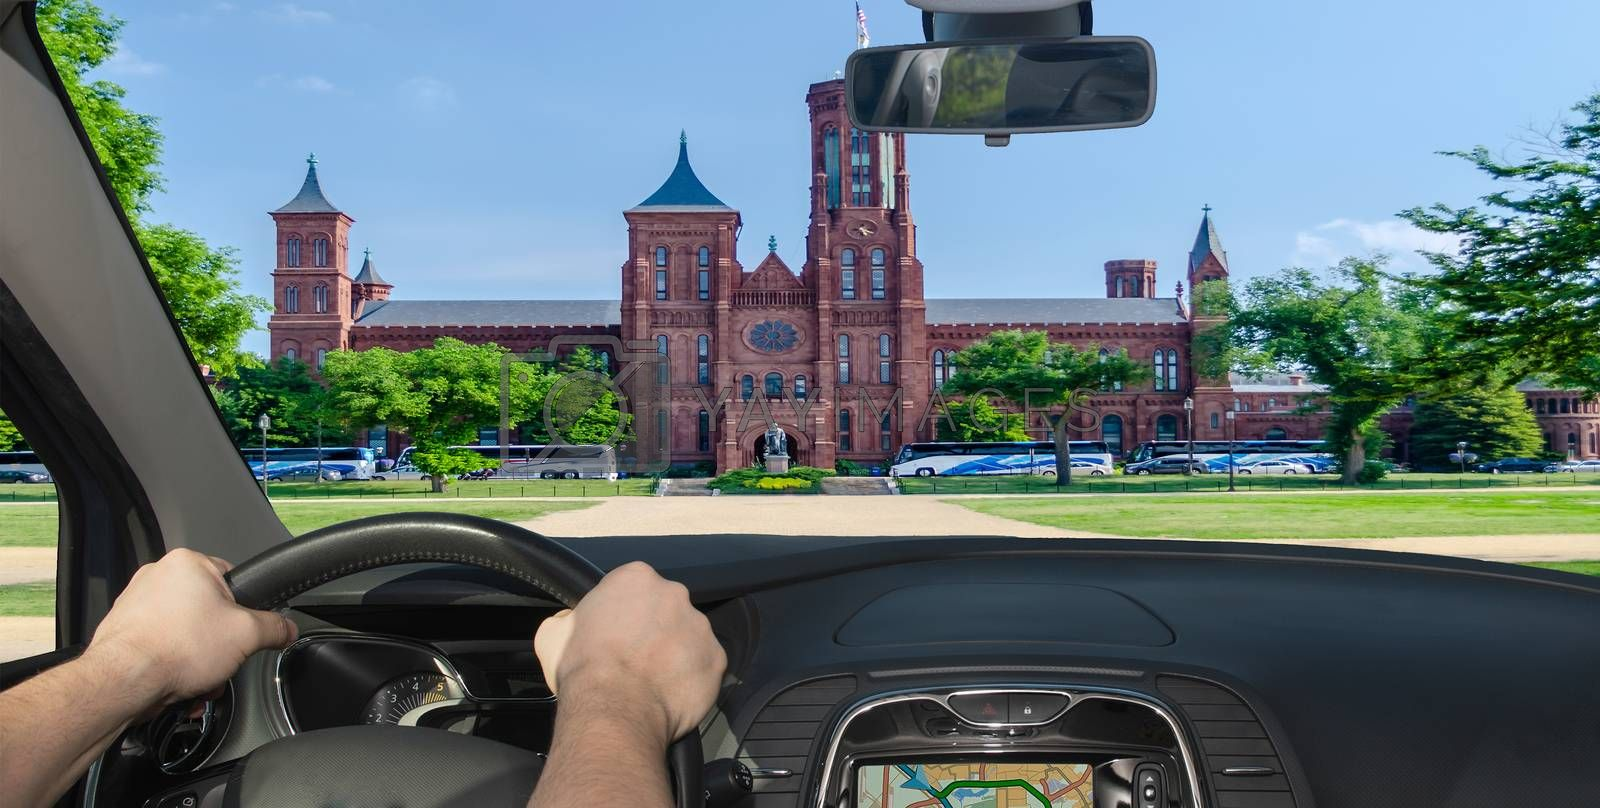 Driving a car towards the iconic Smithsonian Castle along the National Mall in Washington DC, USA